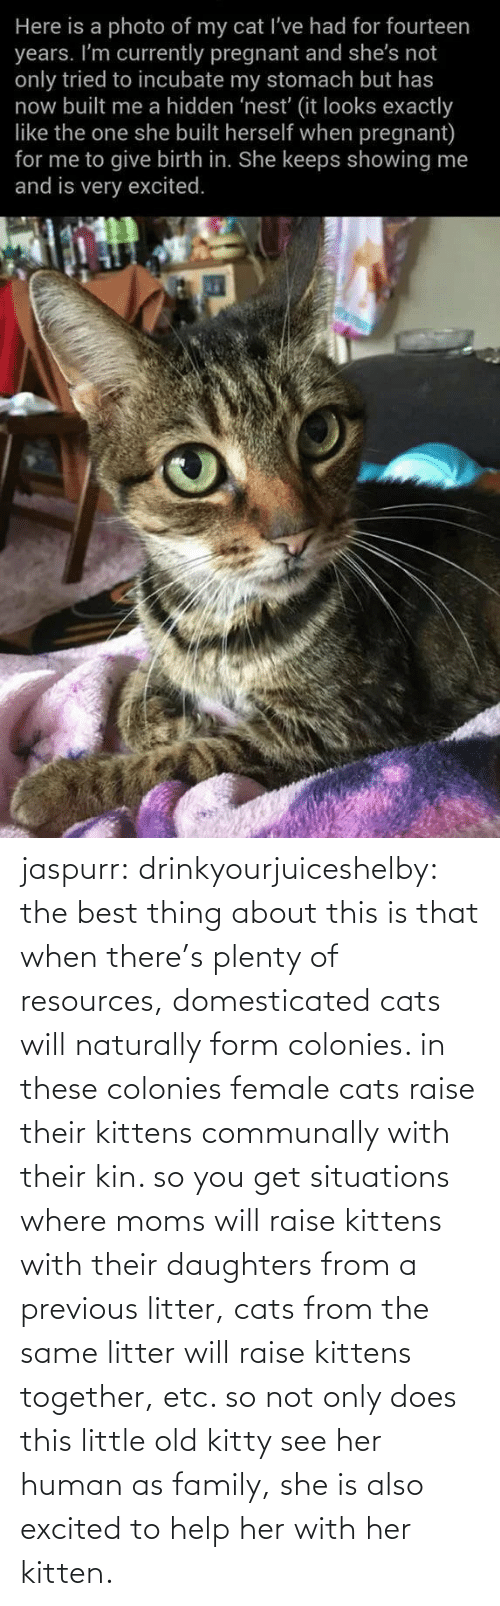 img: jaspurr:  drinkyourjuiceshelby:    the best thing about this is that when there's plenty of resources, domesticated cats will naturally form colonies. in these colonies female cats raise their kittens communally with their kin. so you get situations where moms will raise kittens with their daughters from a previous litter, cats from the same litter will raise kittens together, etc. so not only does this little old kitty see her human as family, she is also excited to help her with her kitten.